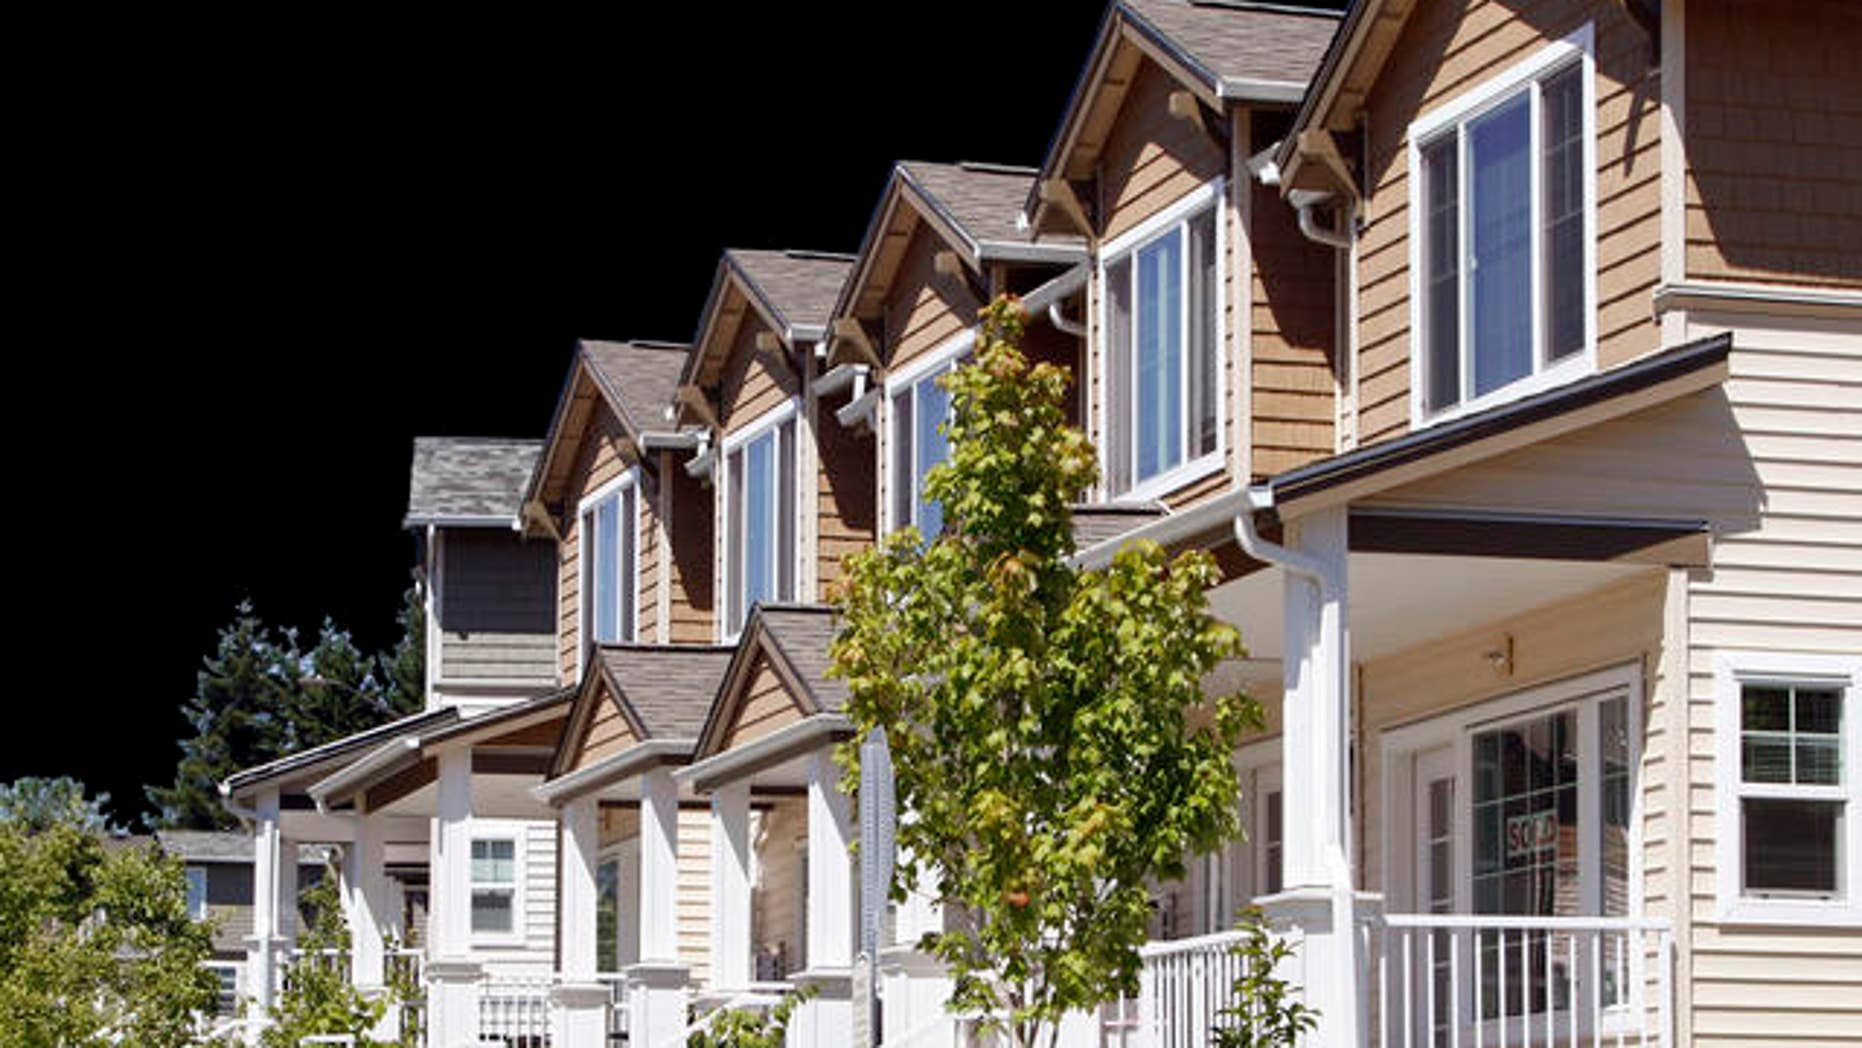 New townhouses for sale are shown in Beaverton, Ore., Monday, July 26, 2010. Home prices rose in May for the second straight month as federal tax incentives pulled more buyers into the market. .(AP Photo/Don Ryan)